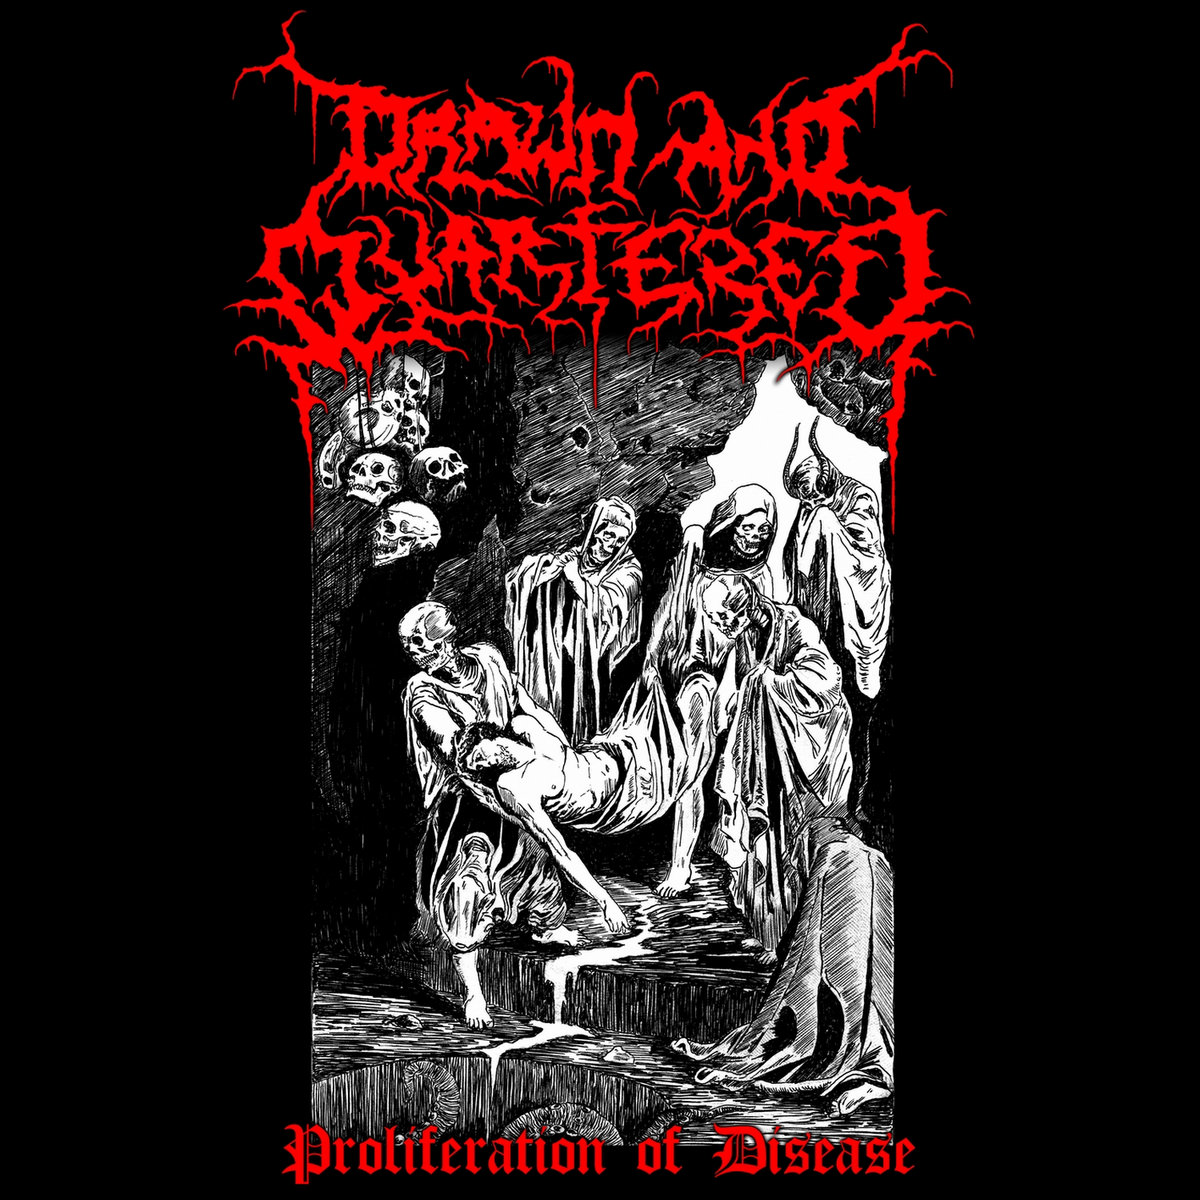 [review] Drawn and Quartered - Proliferation of Disease (2018)